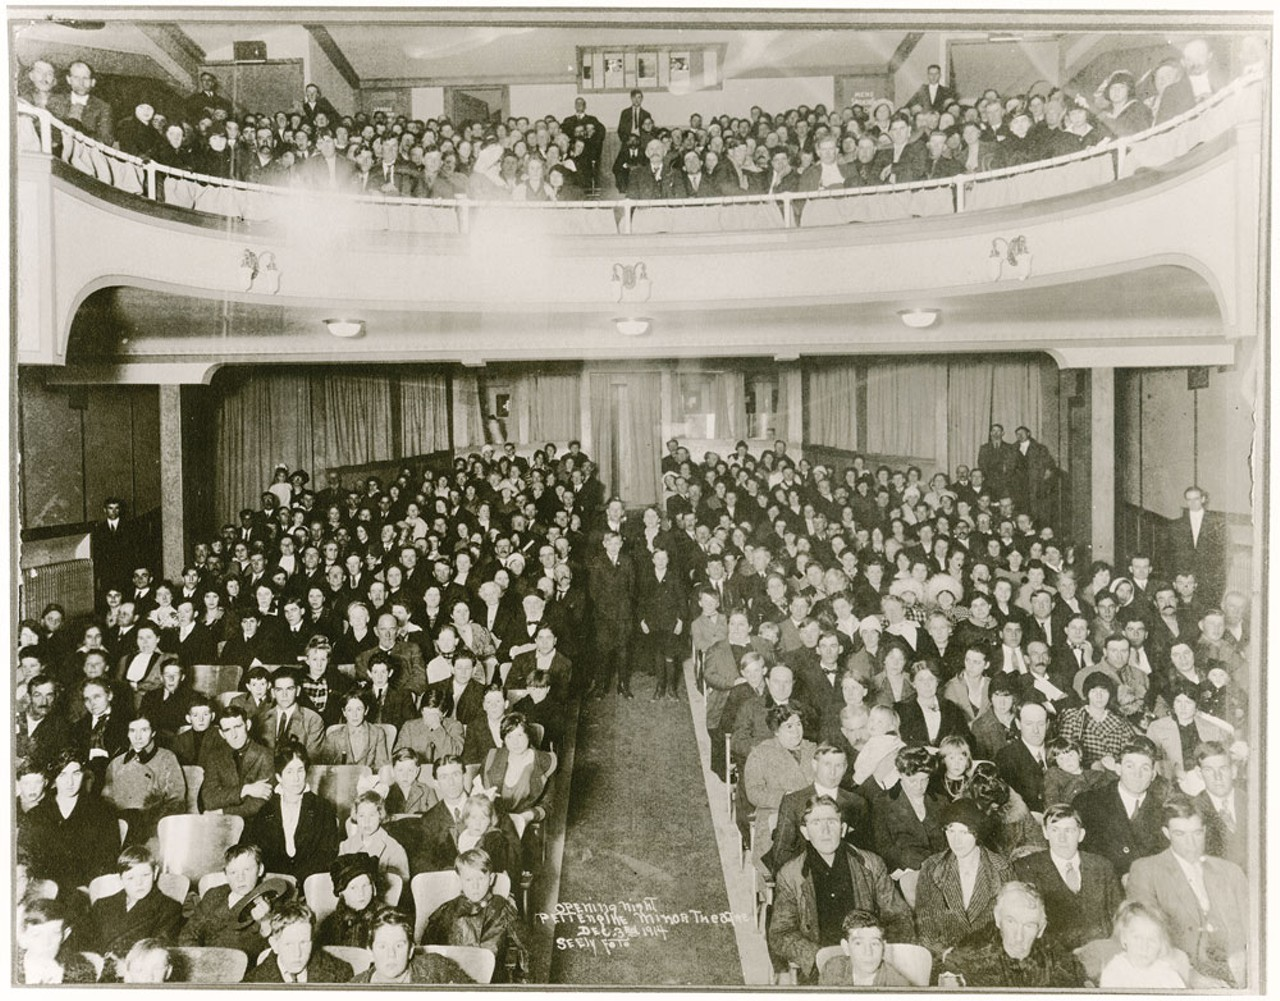 The packed house of Minor Theatre's original opening night.